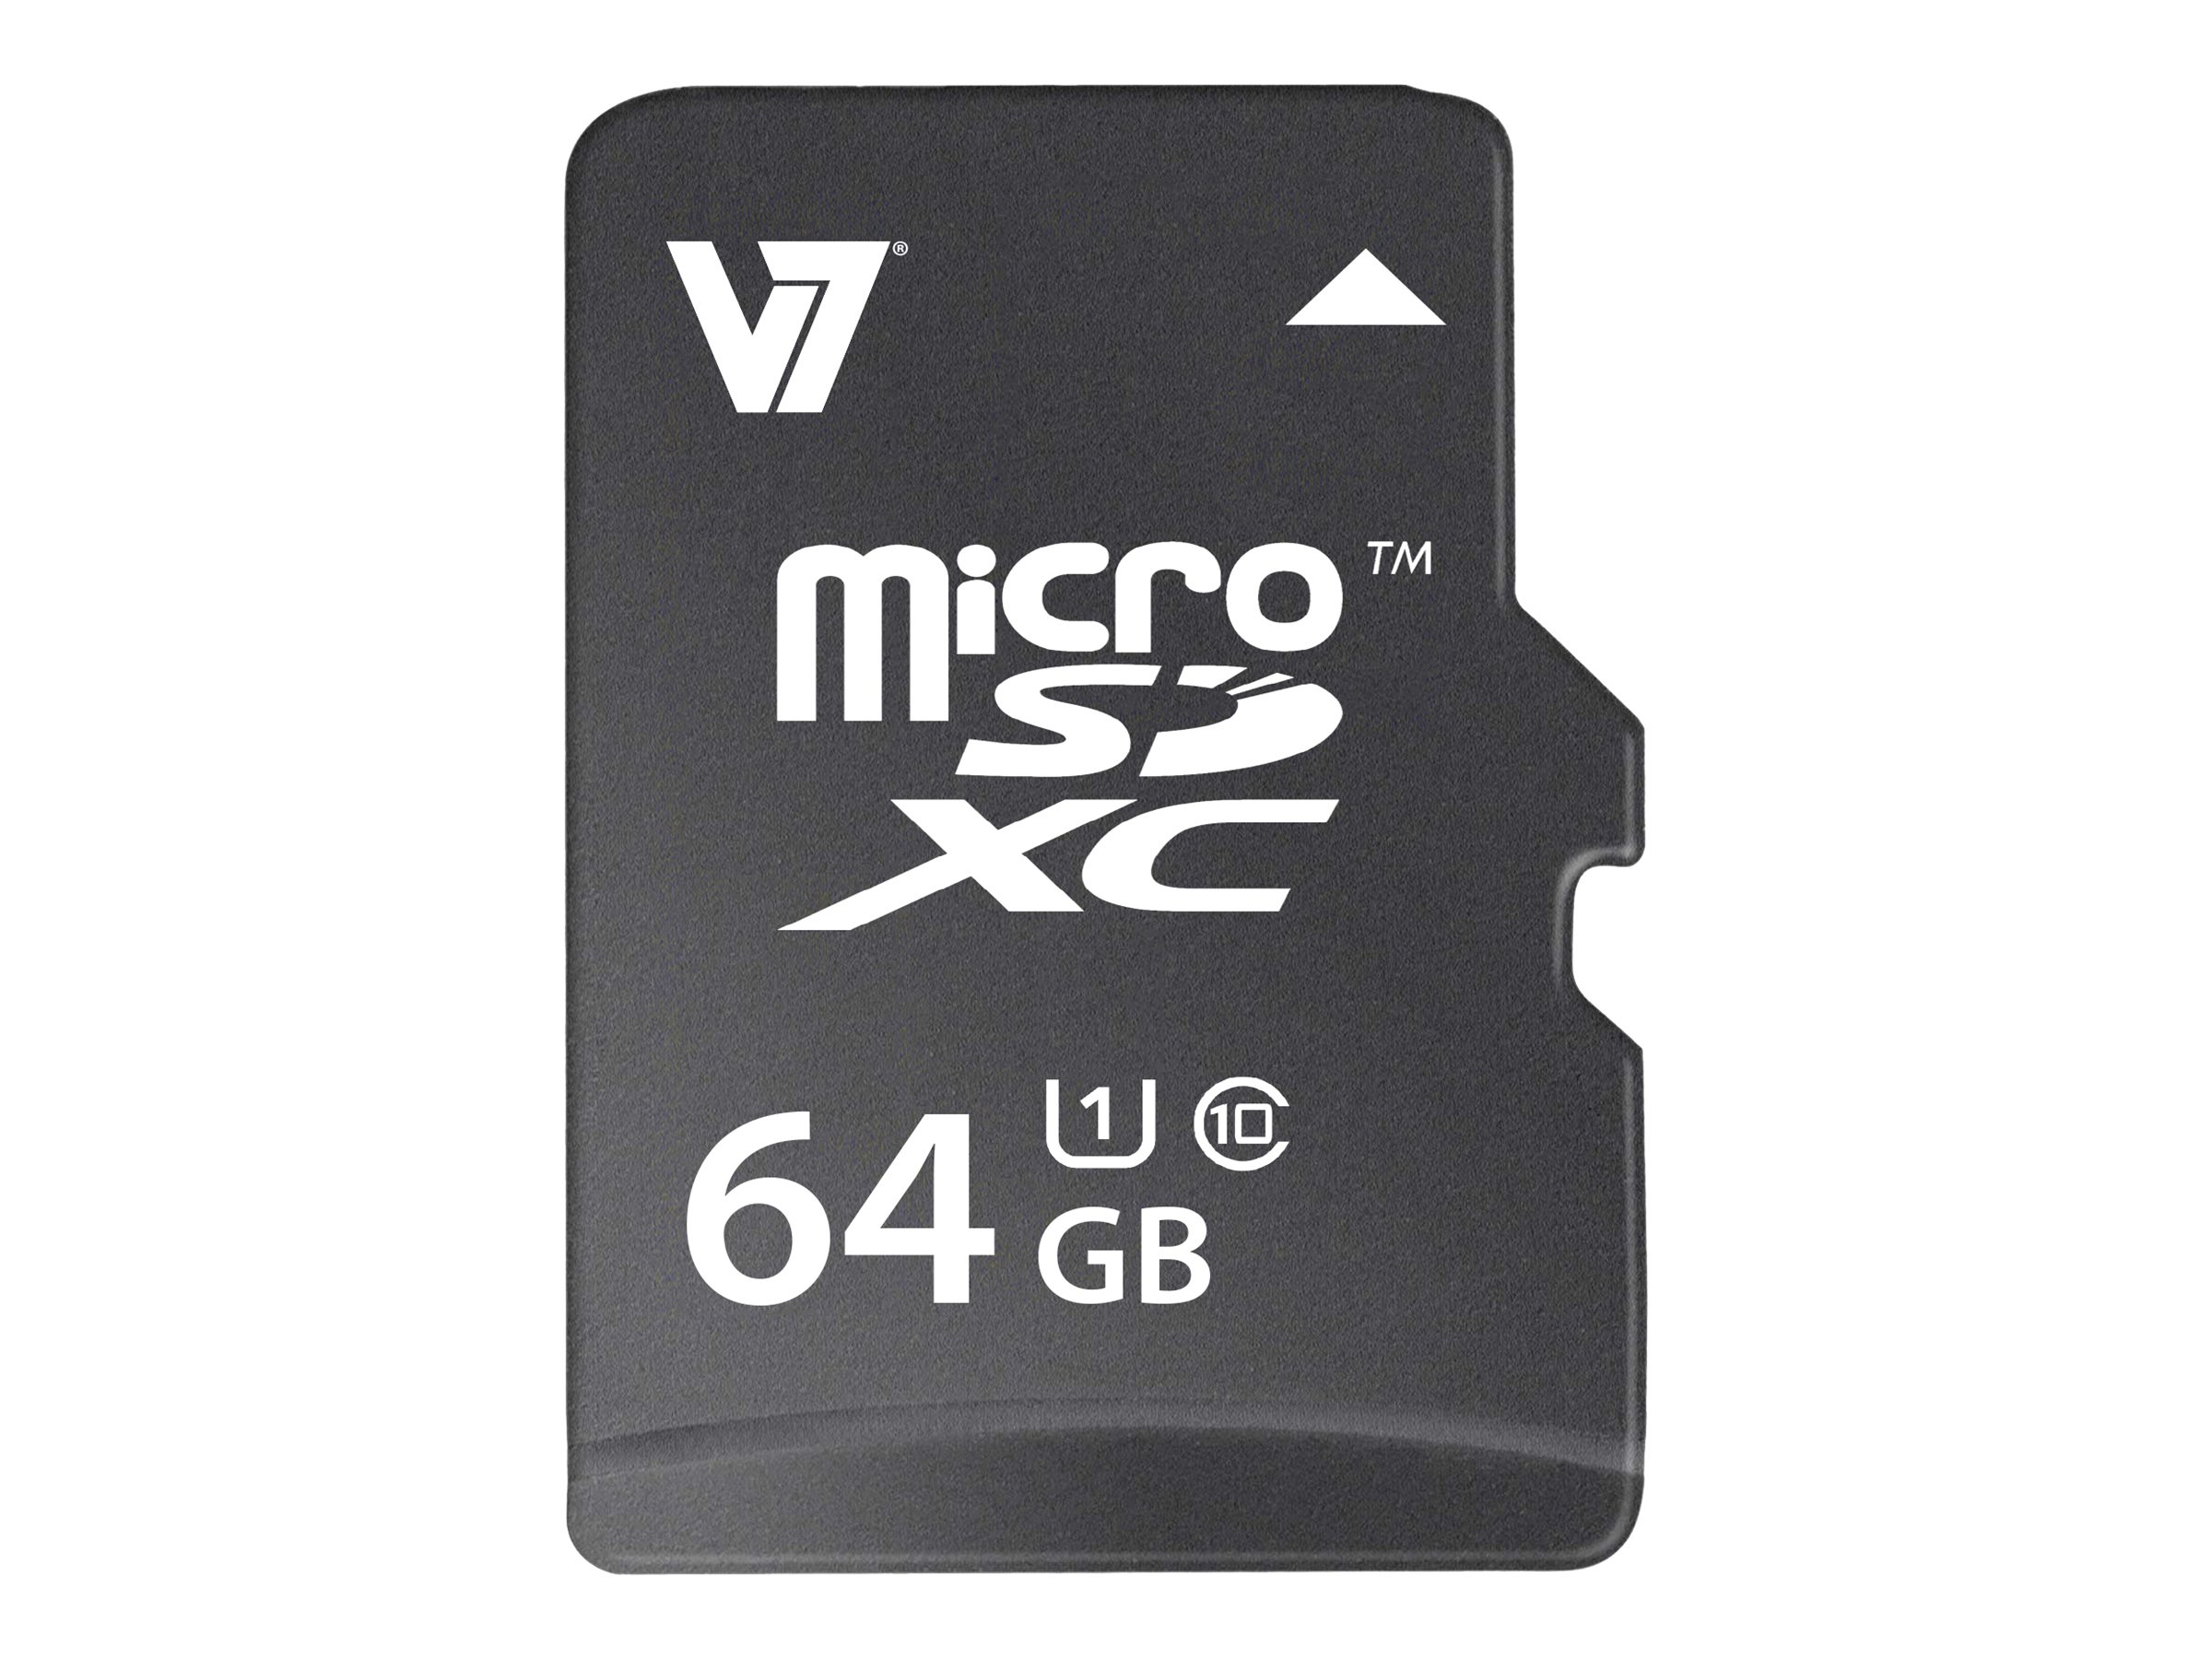 V7 64GB Micro SDXC Flash Memory Card, Class 10, VAMSDX64GUHS1R-2N, 16910691, Memory - Flash